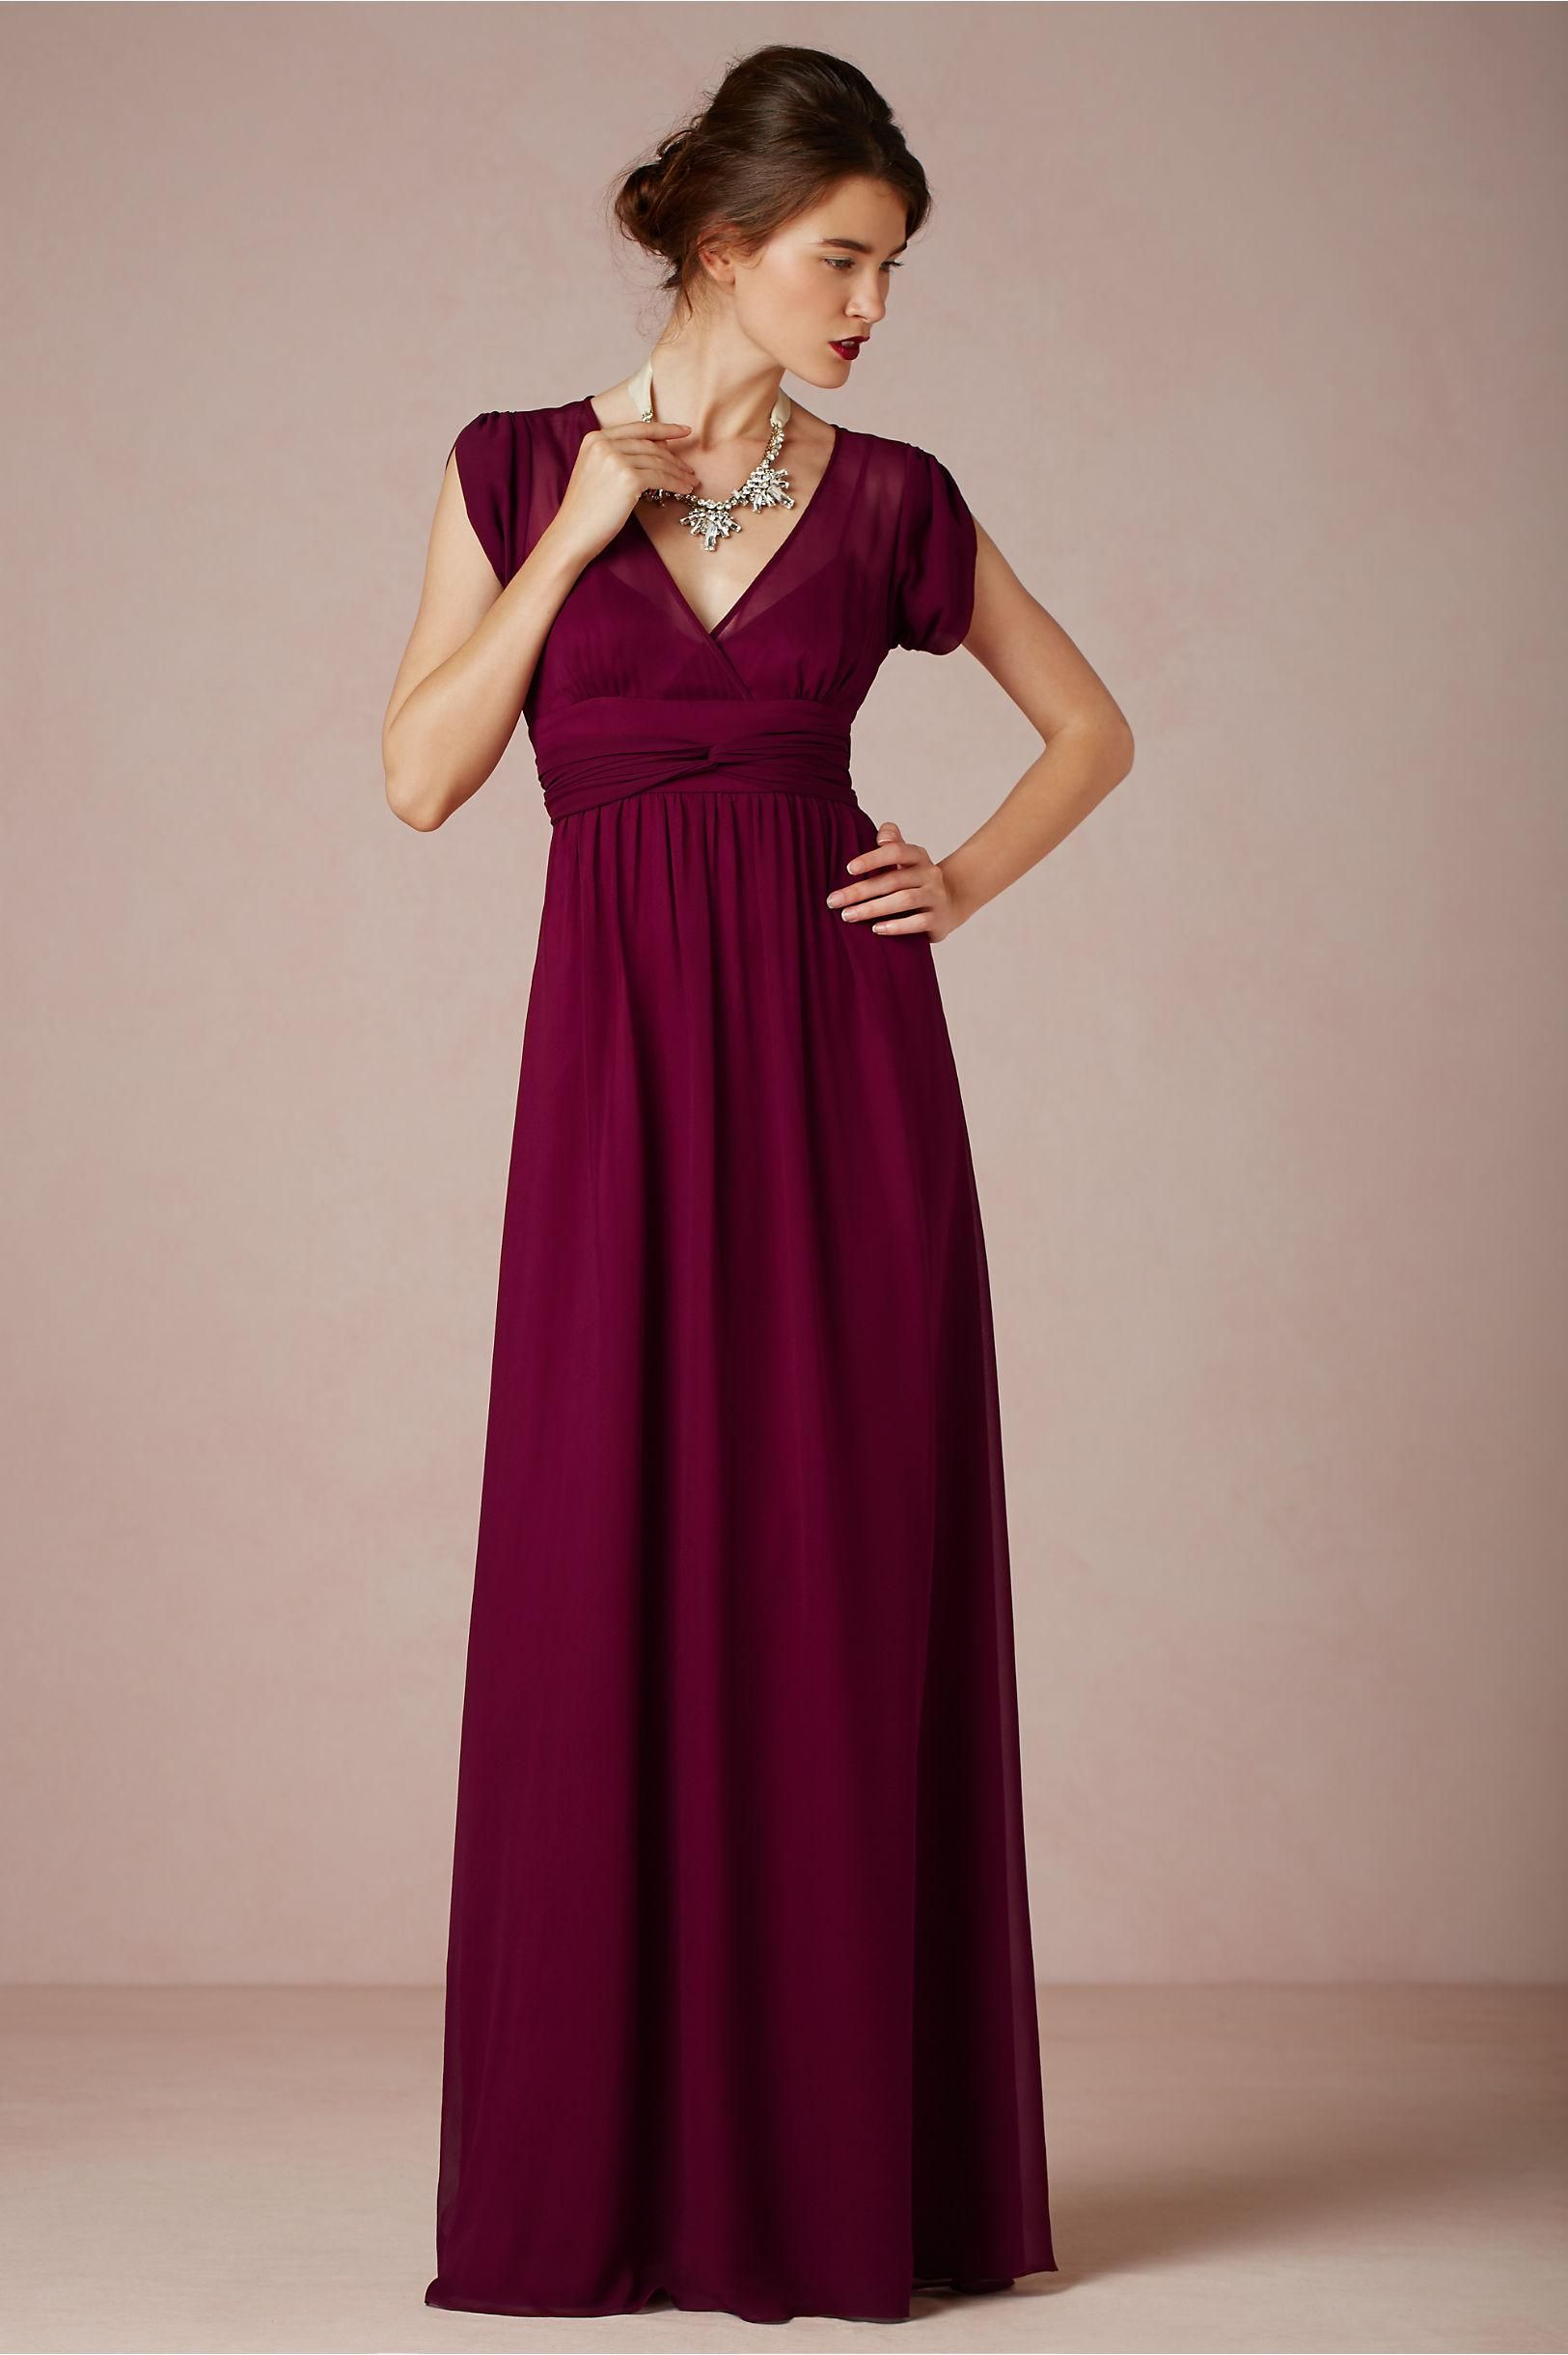 ab574cb8f4 Ava Maxi Dress in Merlot from BHLDN